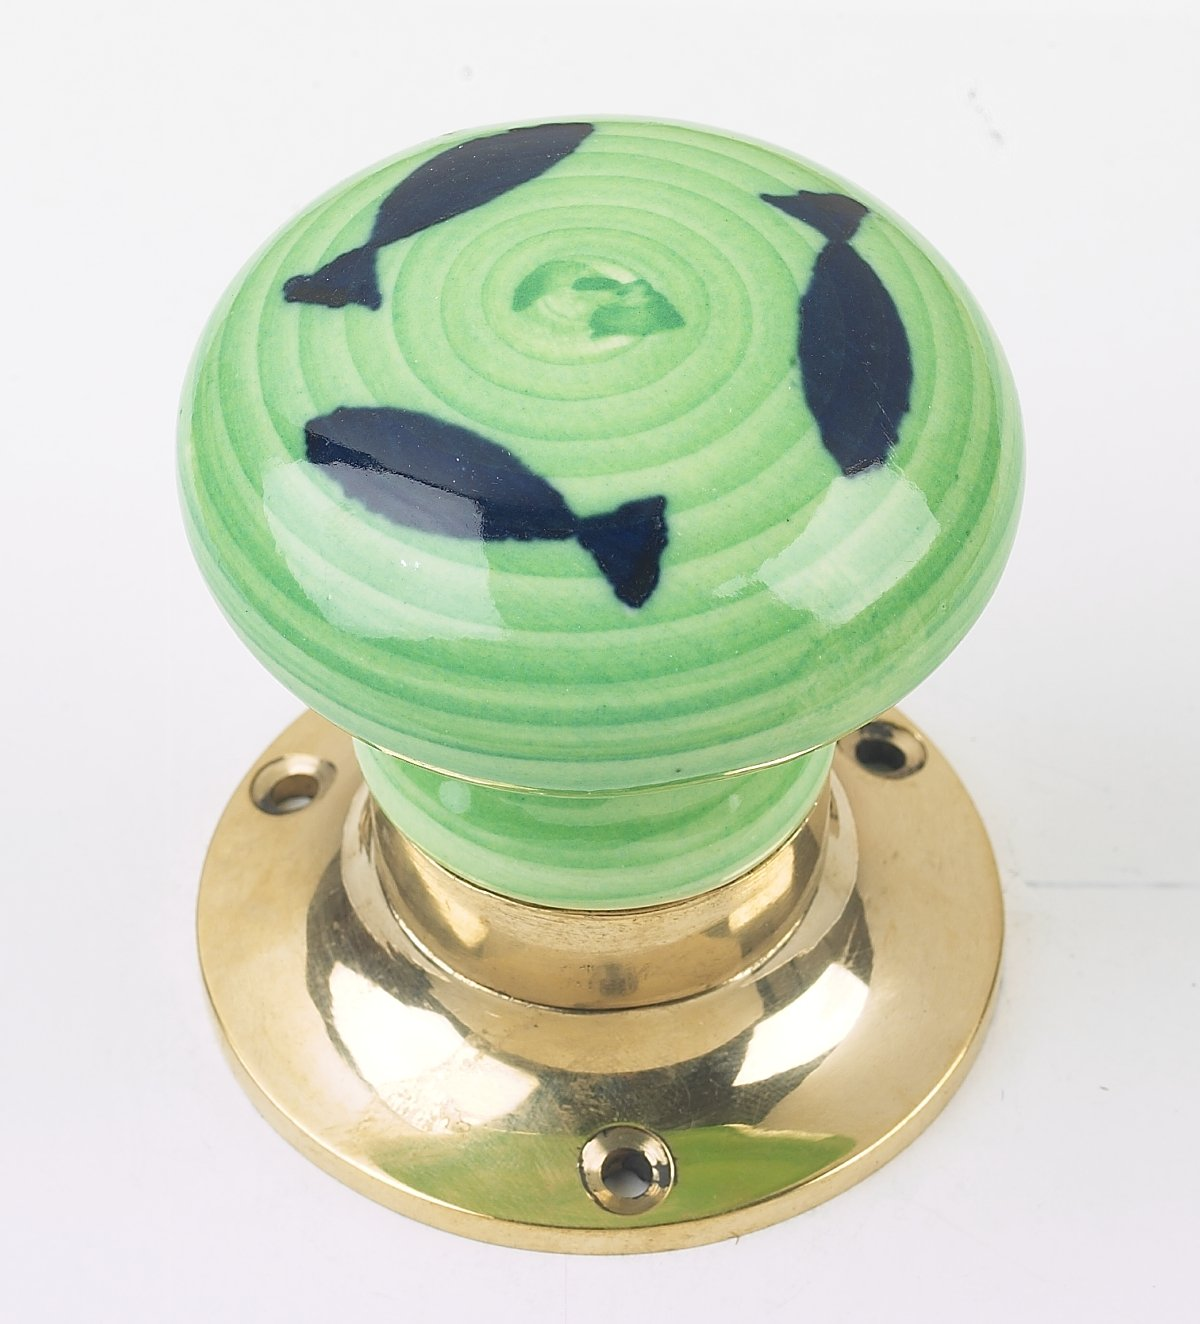 Pair of Lime Green Ceramic Sprung Door Knobs With Chrome Backplates